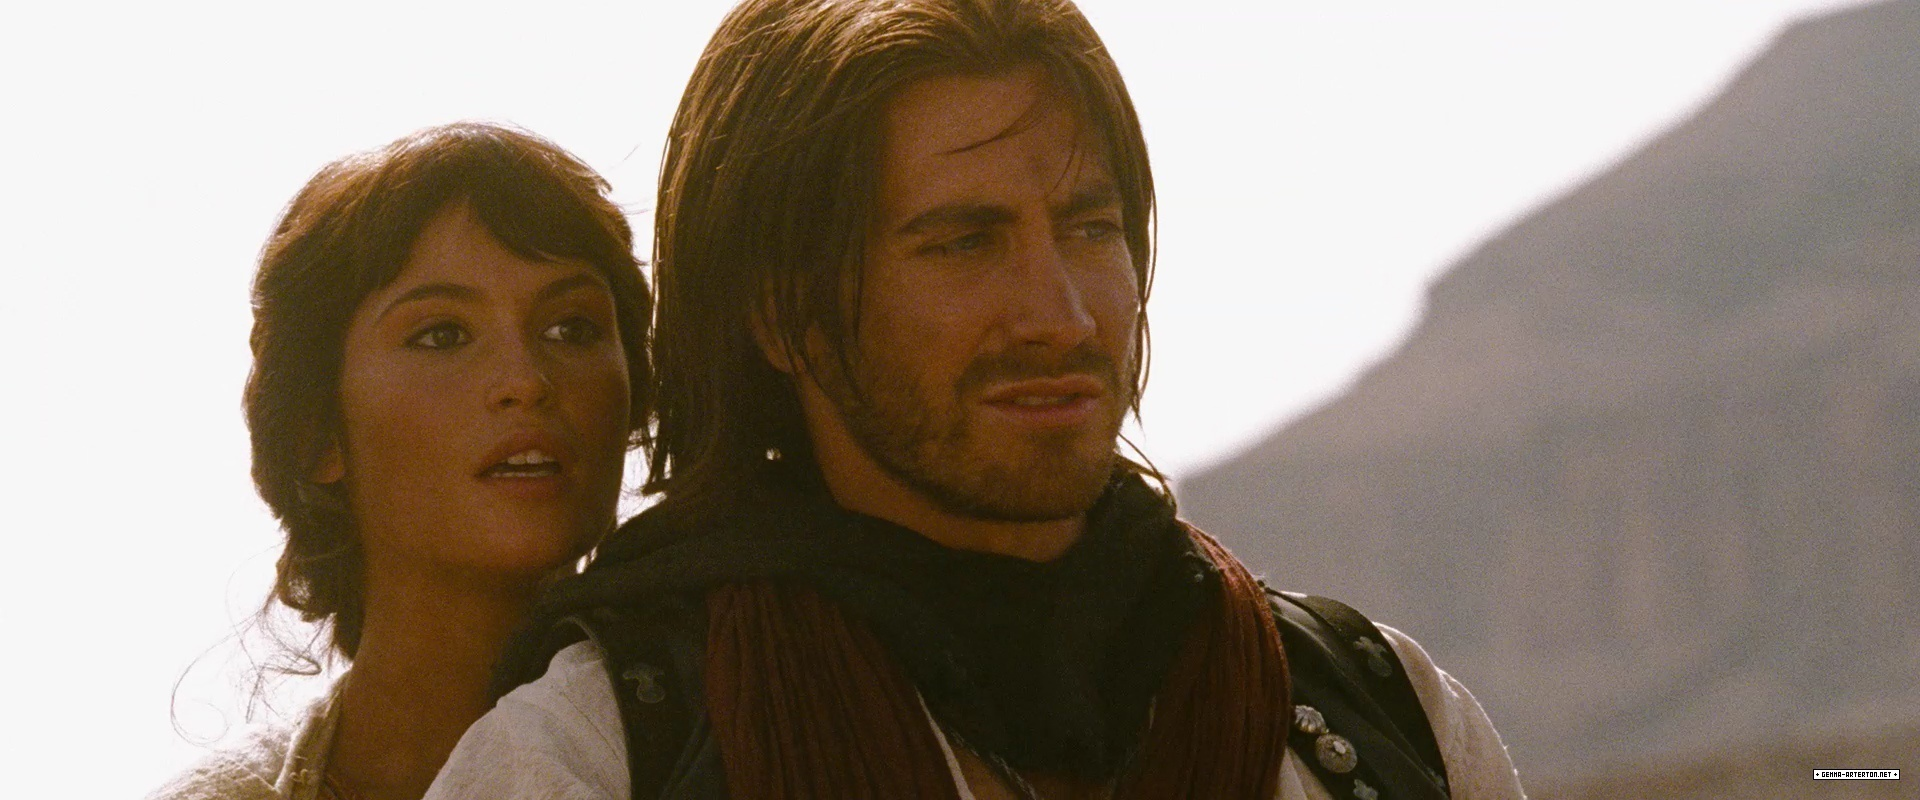 Prince Of Persia The Sands Of Time Trailer Caps Prince Of Persia The Sands Of Time Image 14929985 Fanpop